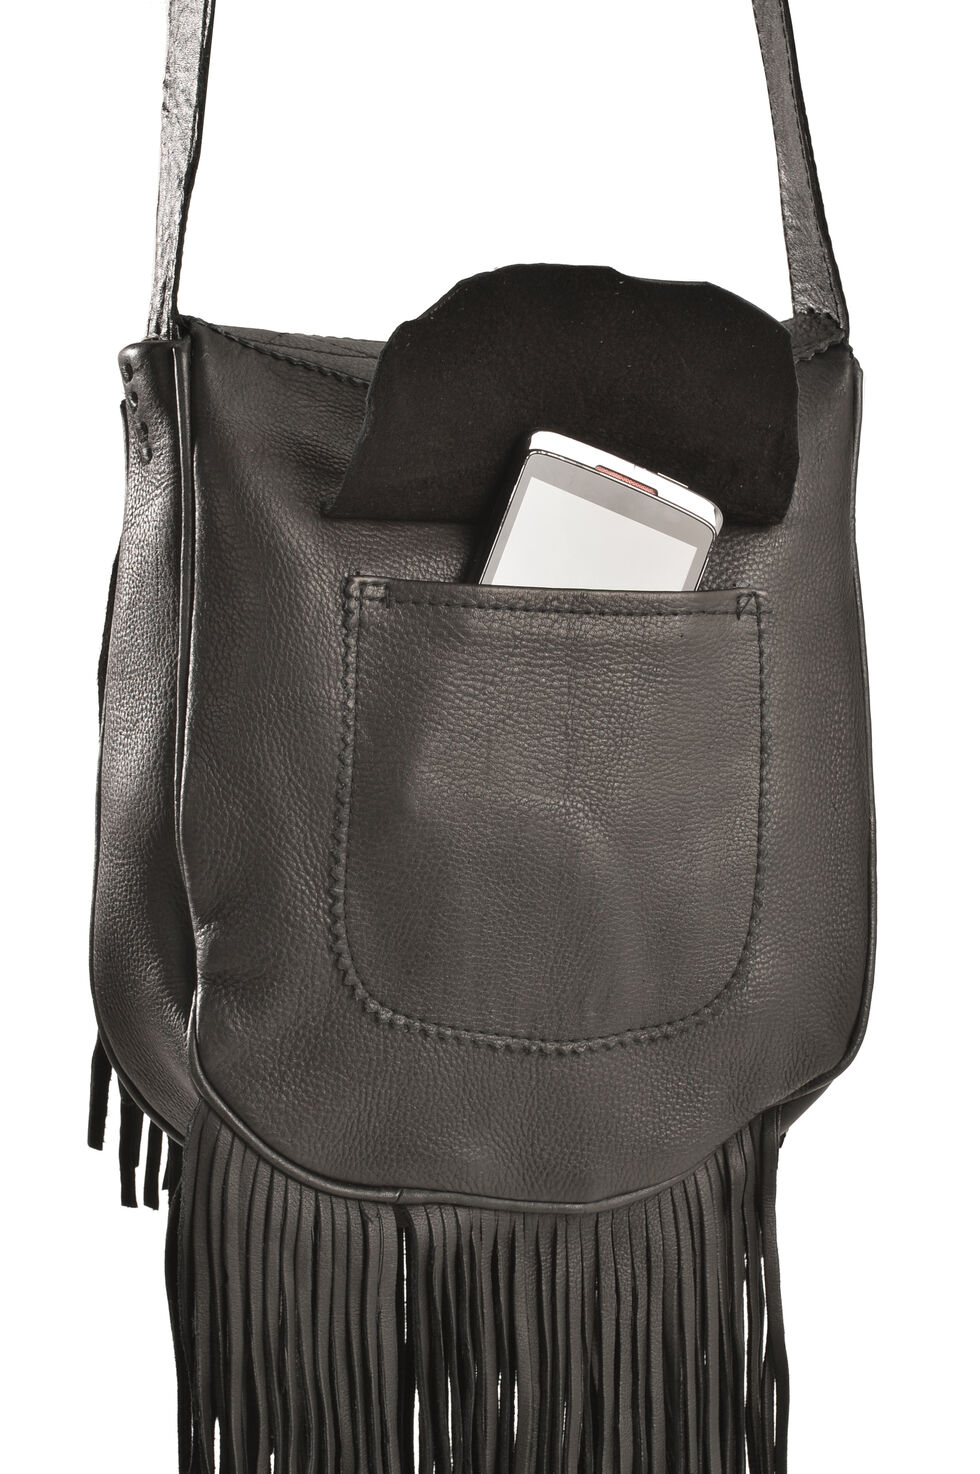 Kobler Leather Black Painted Handbag, Black, hi-res